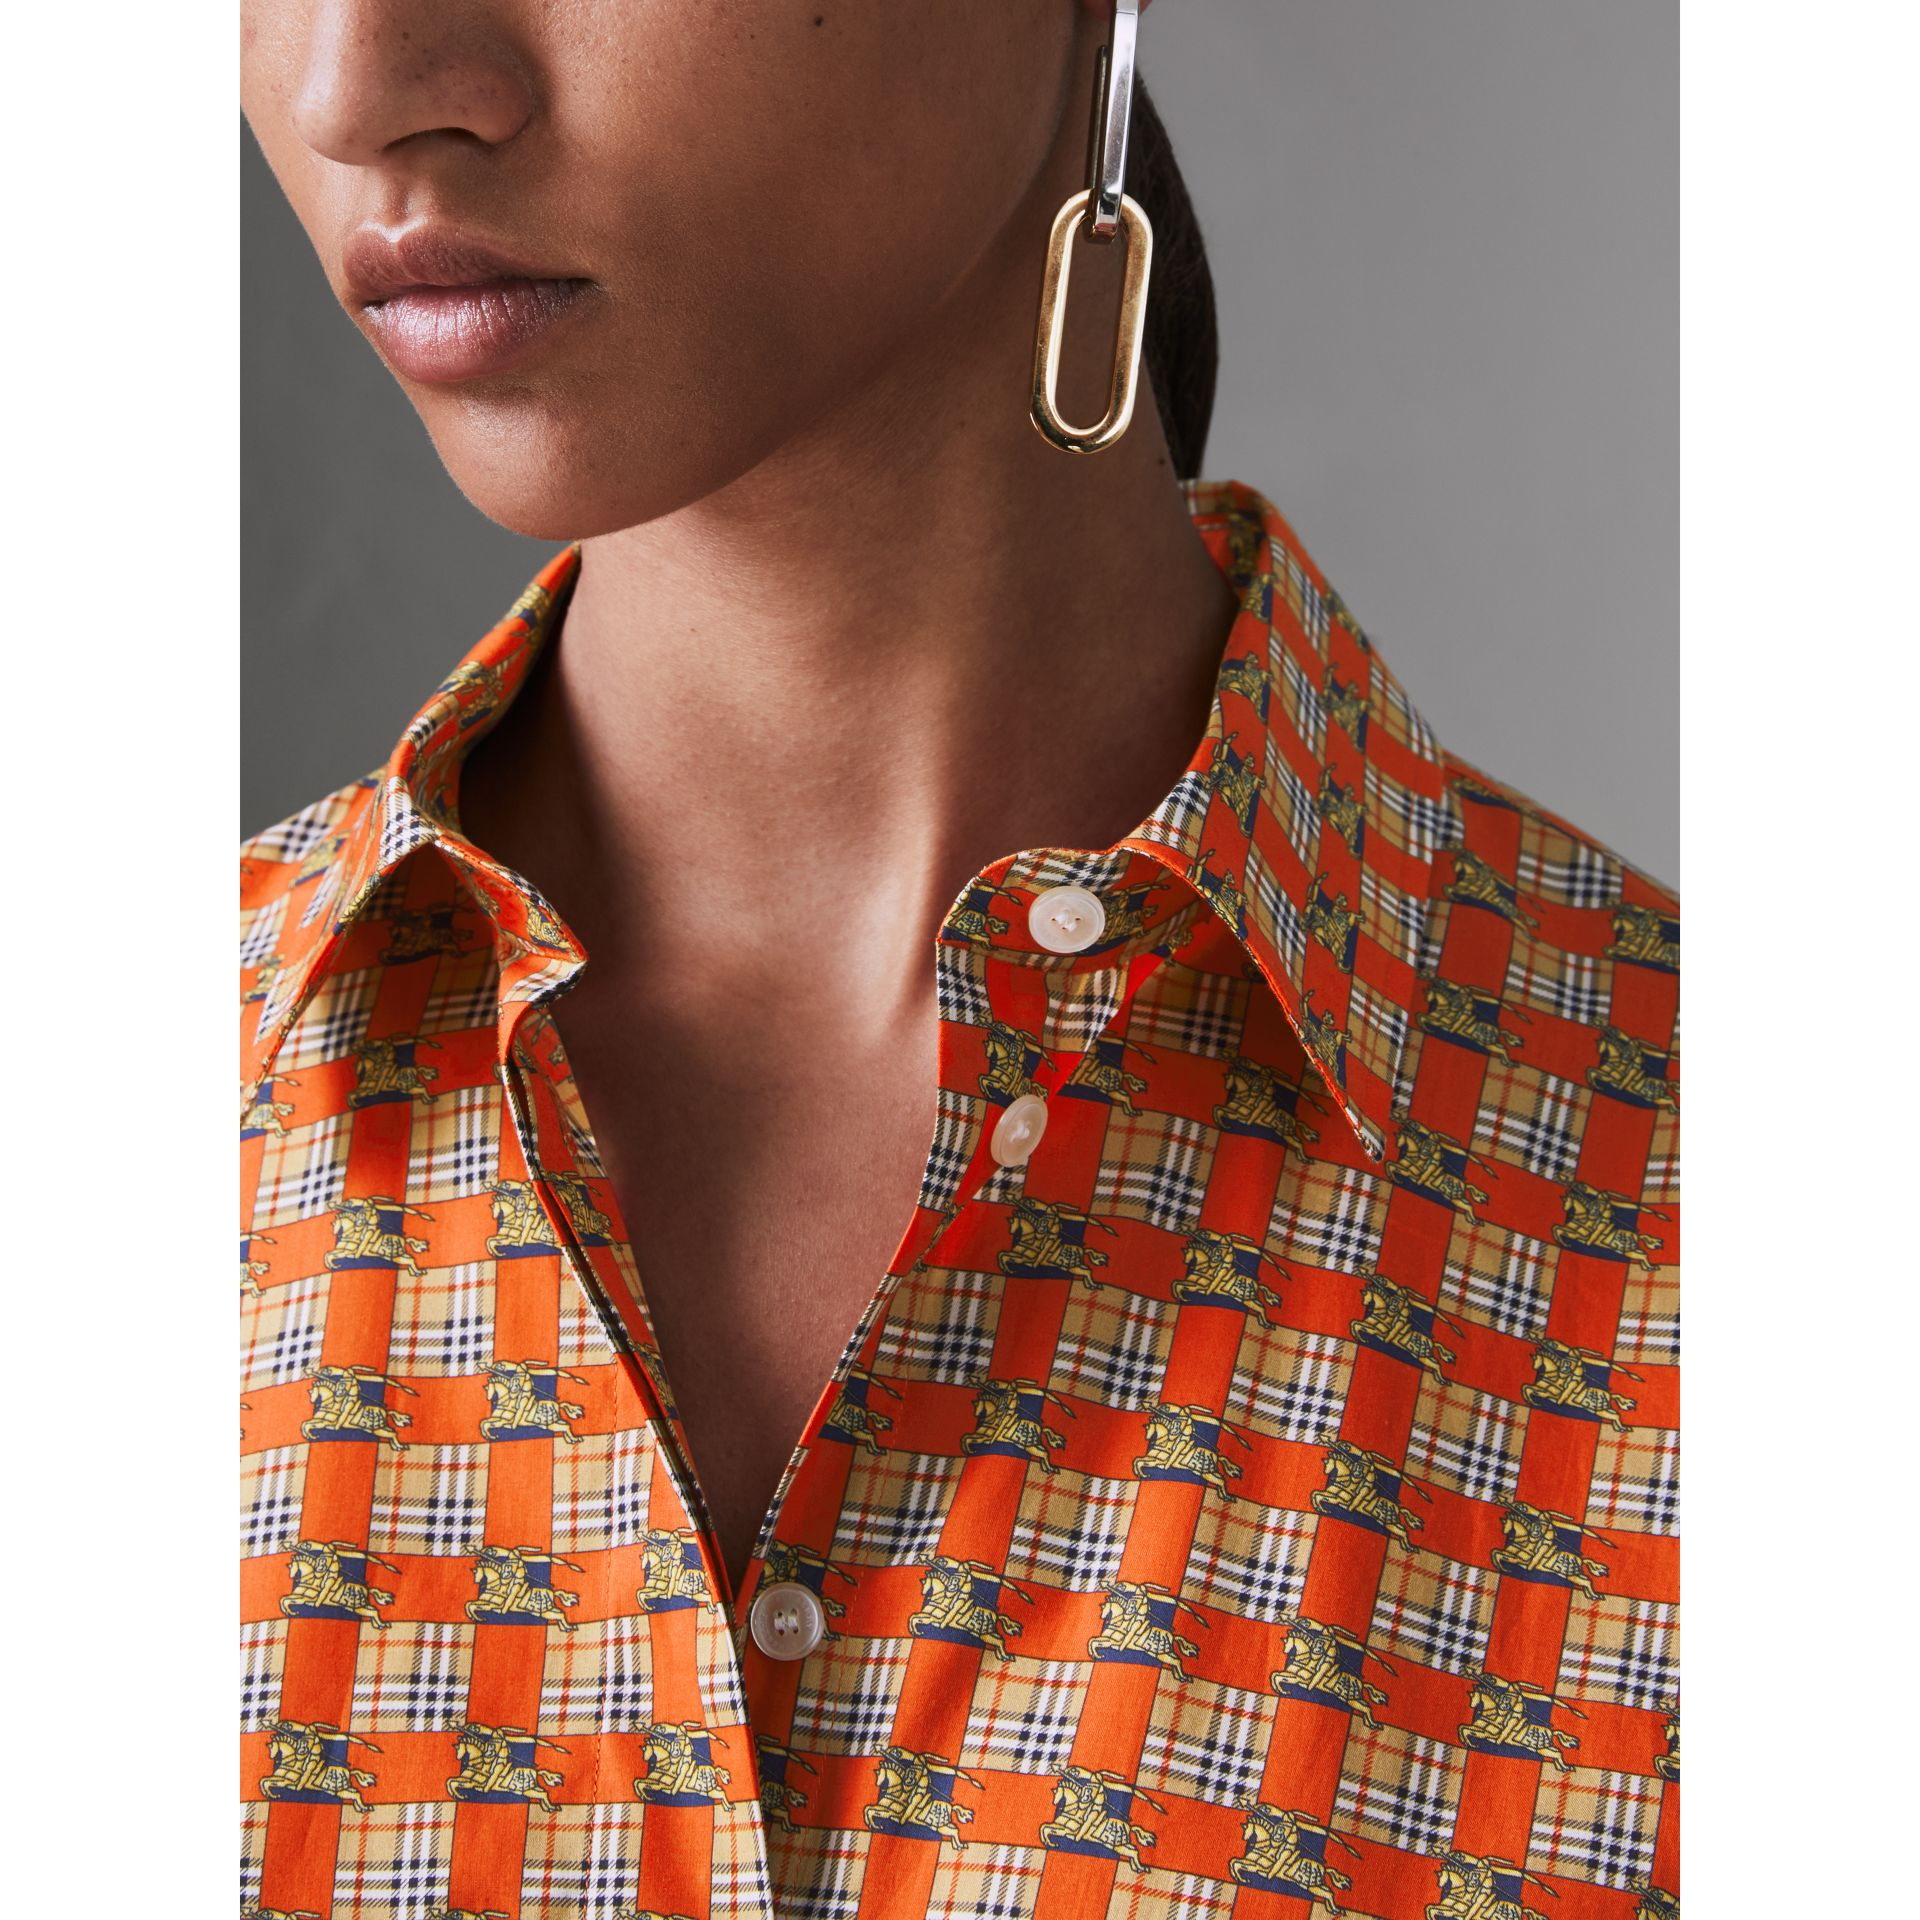 Tiled Archive Print Cotton Shirt in Bright Red - Women | Burberry Australia - gallery image 4